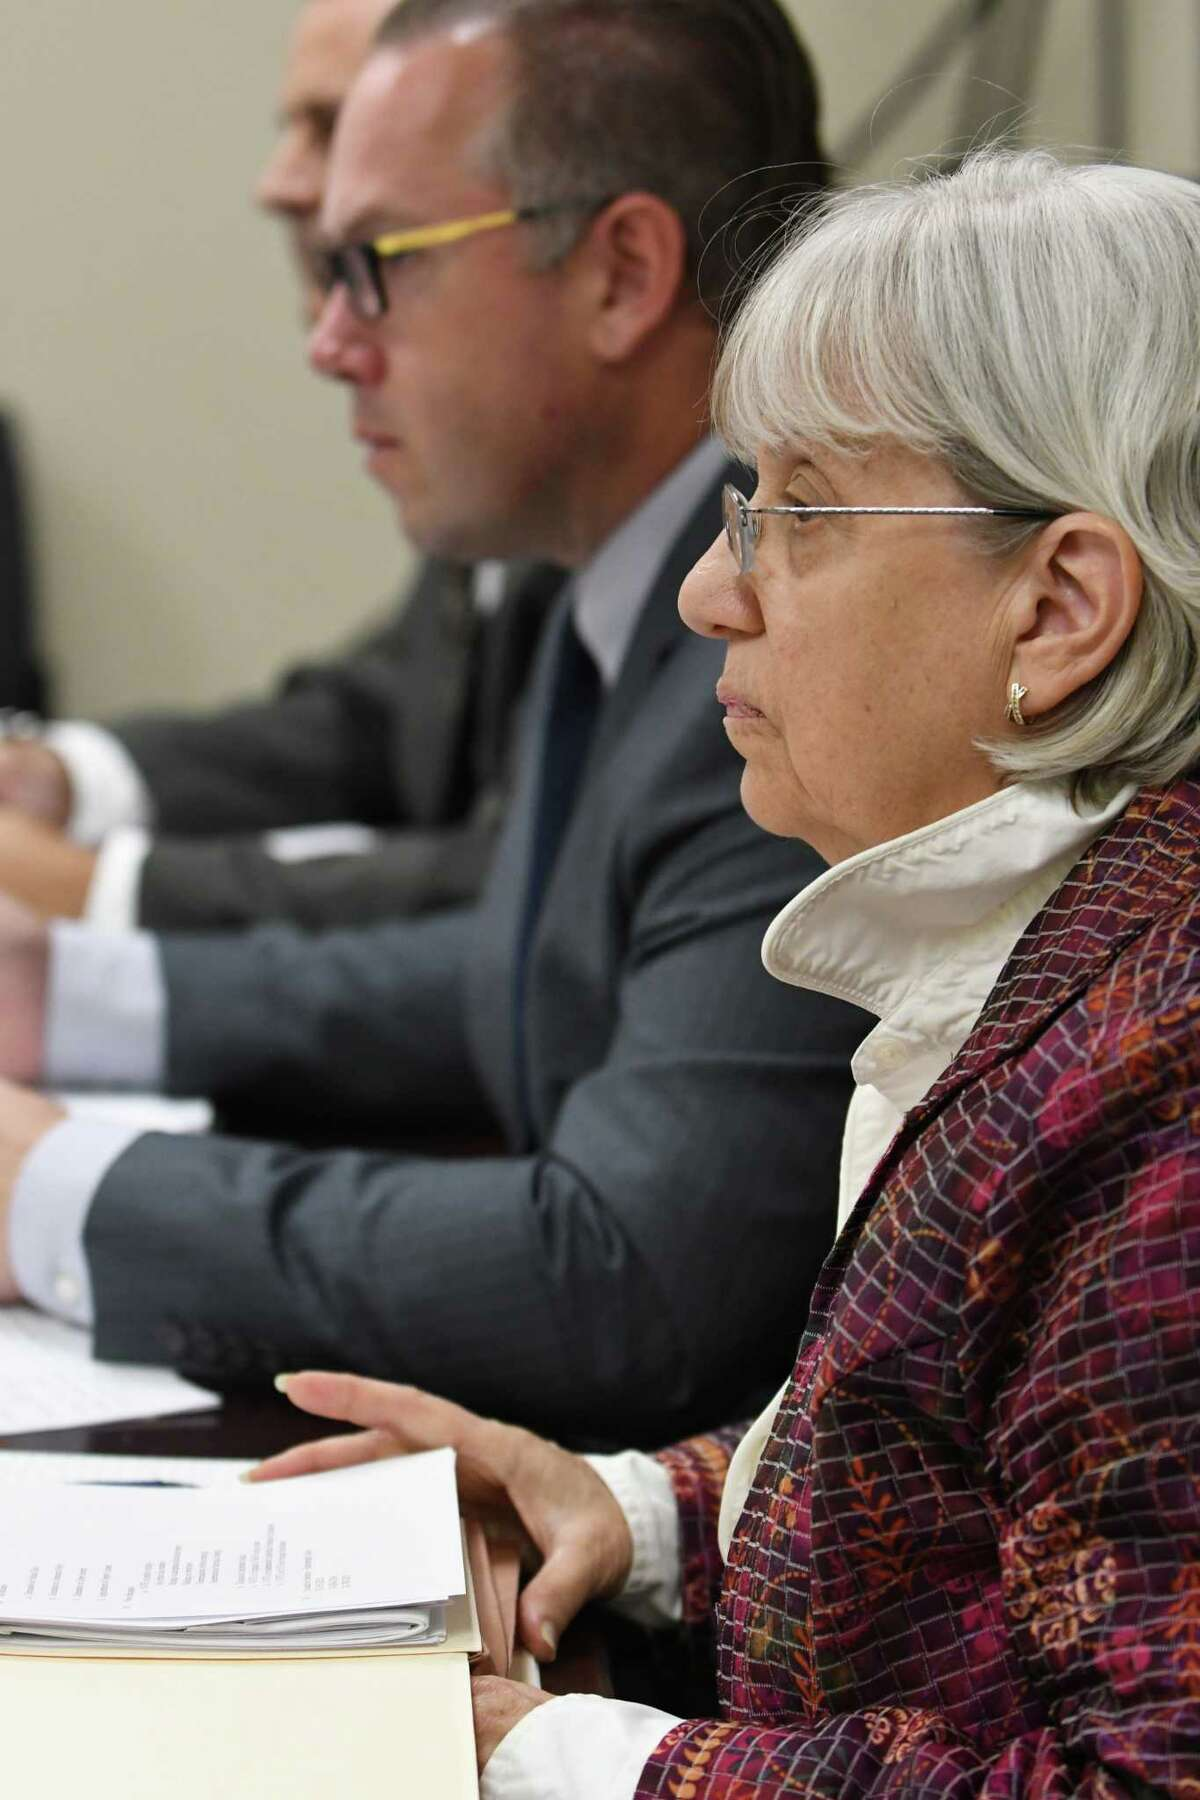 Independent Enforcement Counsel Risa Sugarman during a meeting of the State Board of Elections on Thursday Sept. 15, 2016 in Albany, N.Y. (Michael P. Farrell/Times Union)